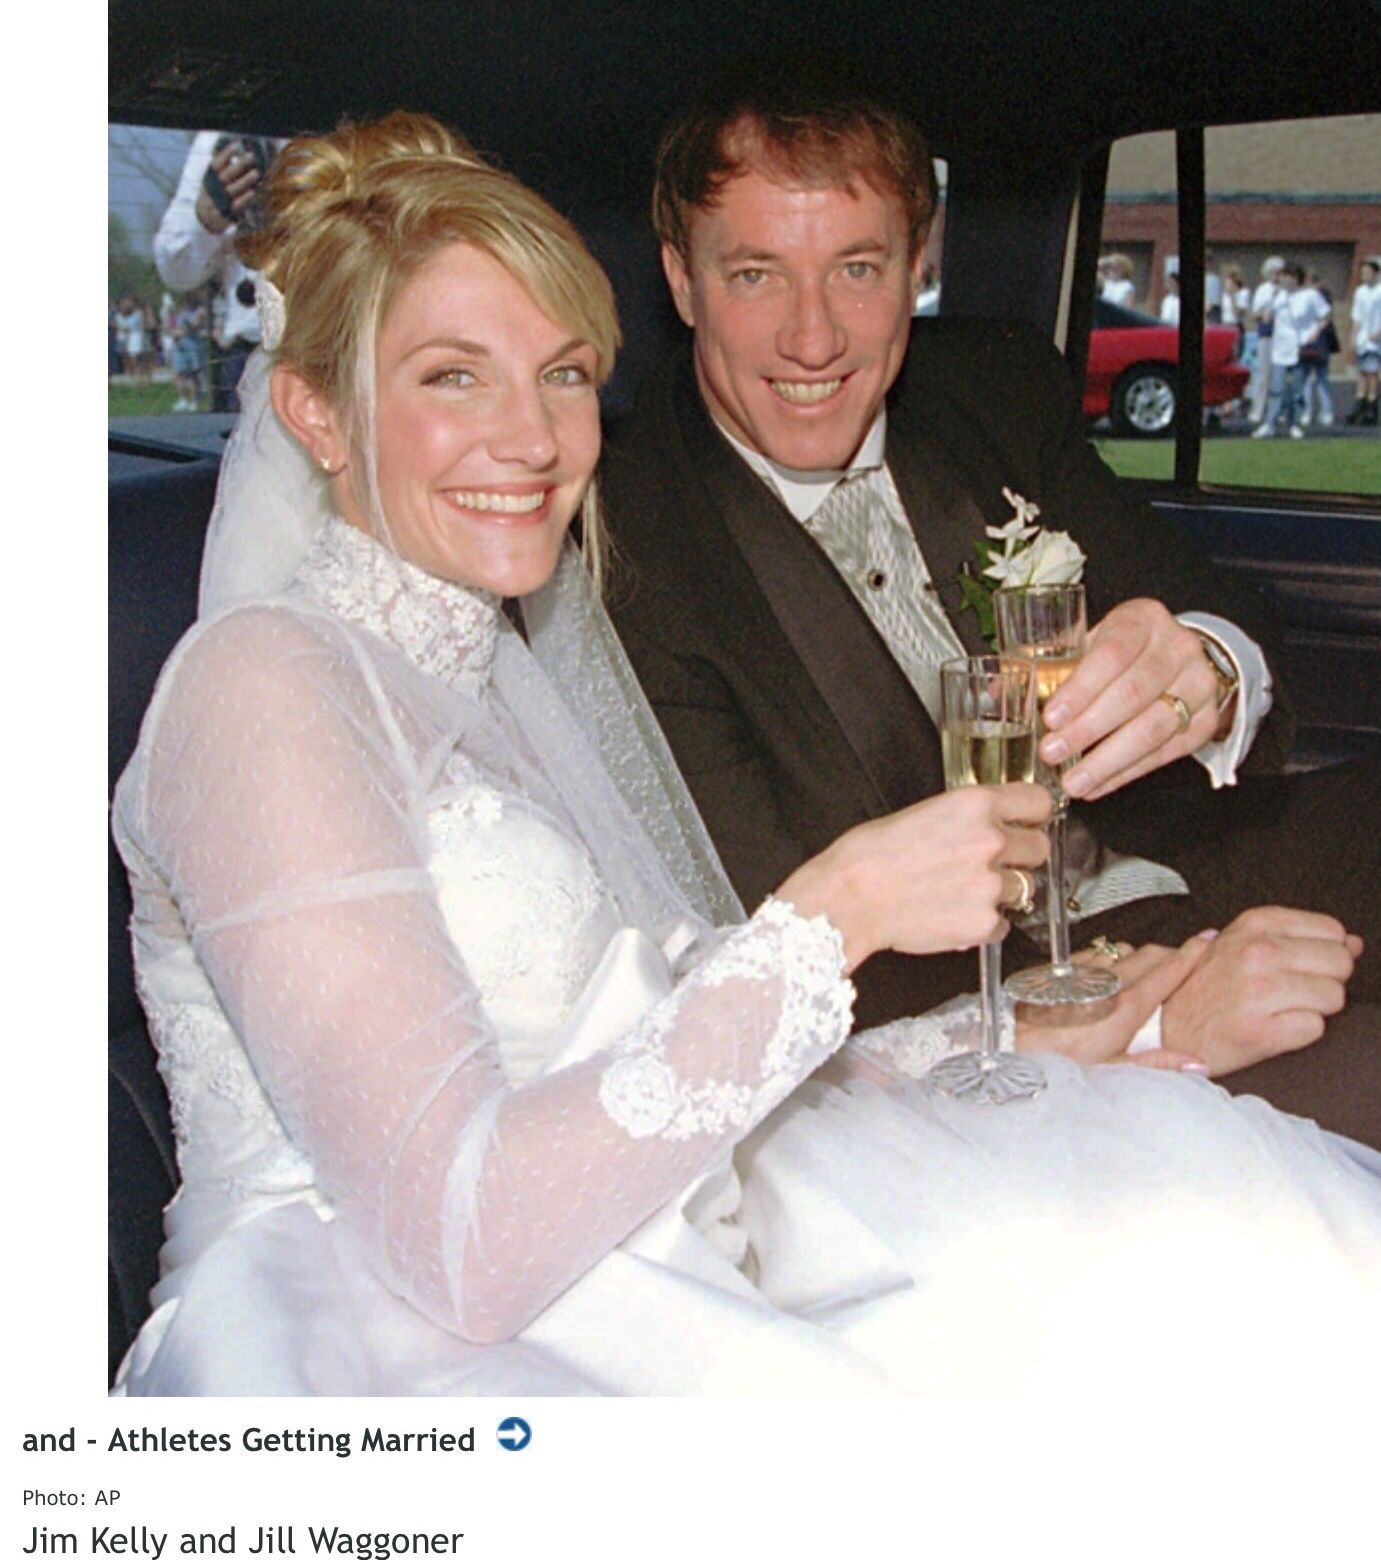 Tricia Nixon Wedding Gown: Jim Kelly And Jill Waggoner Wedding 1996